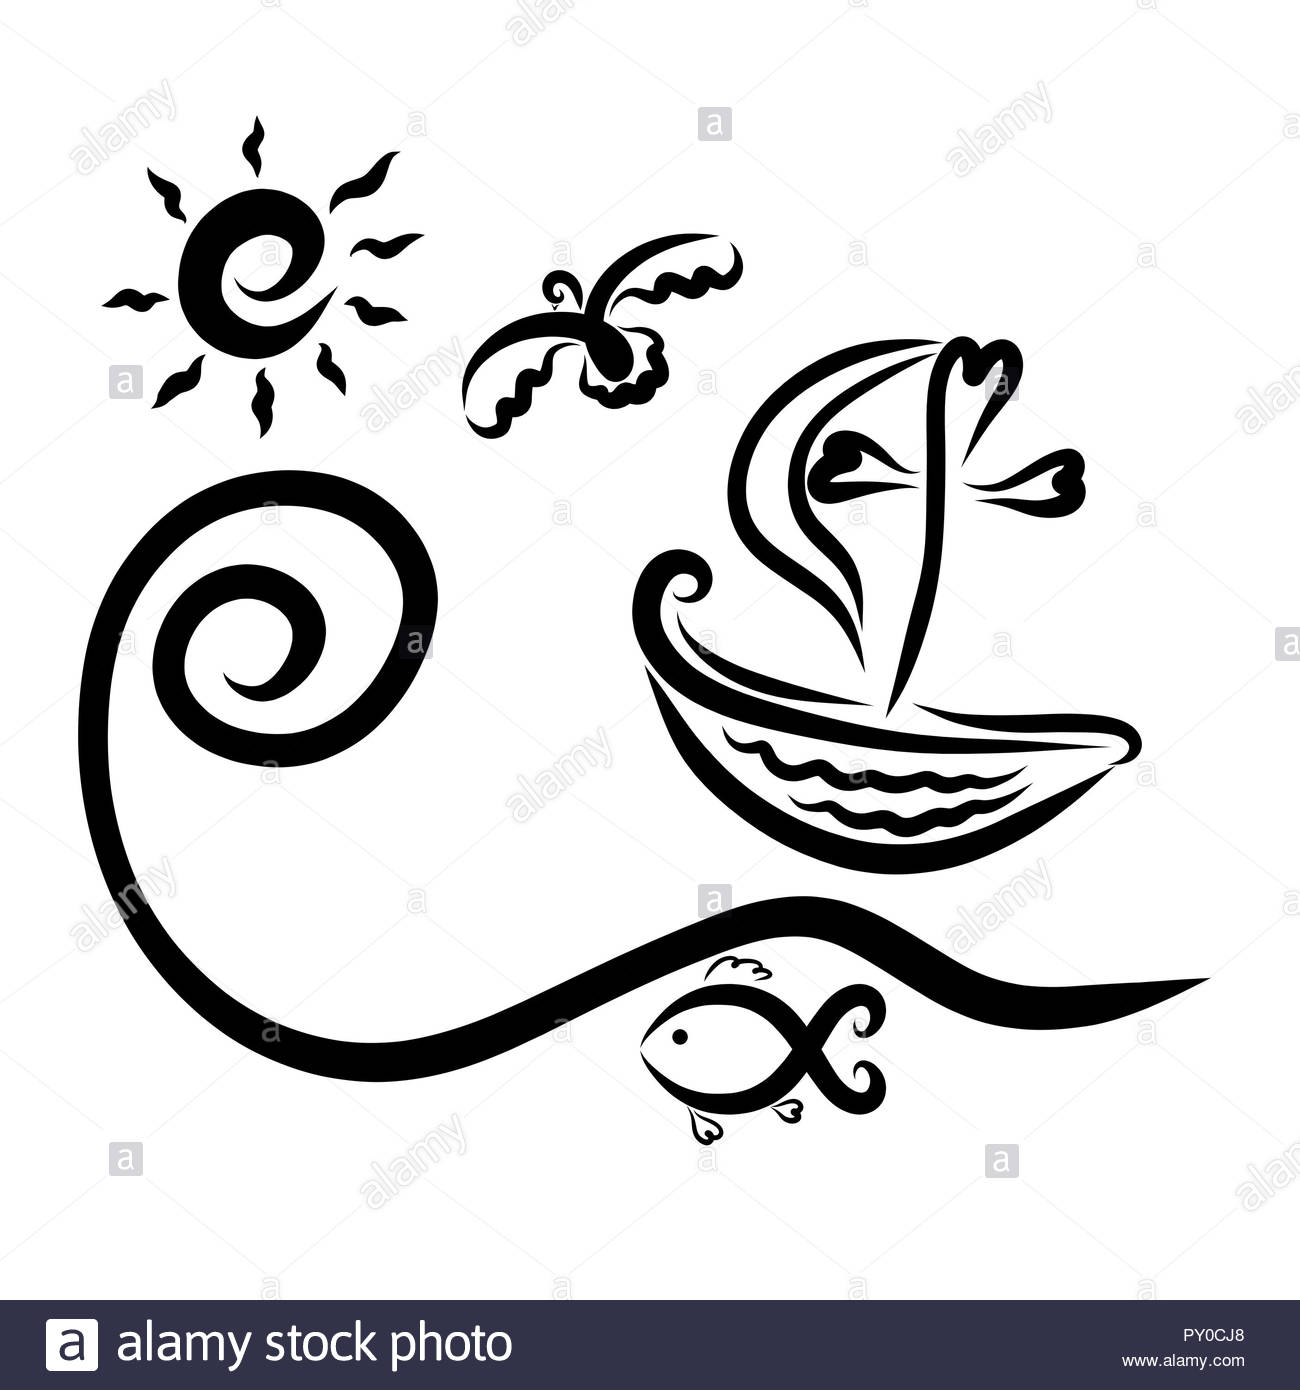 Small ship with a cross and sail, rising wave, bird, fish and sun - Stock Image